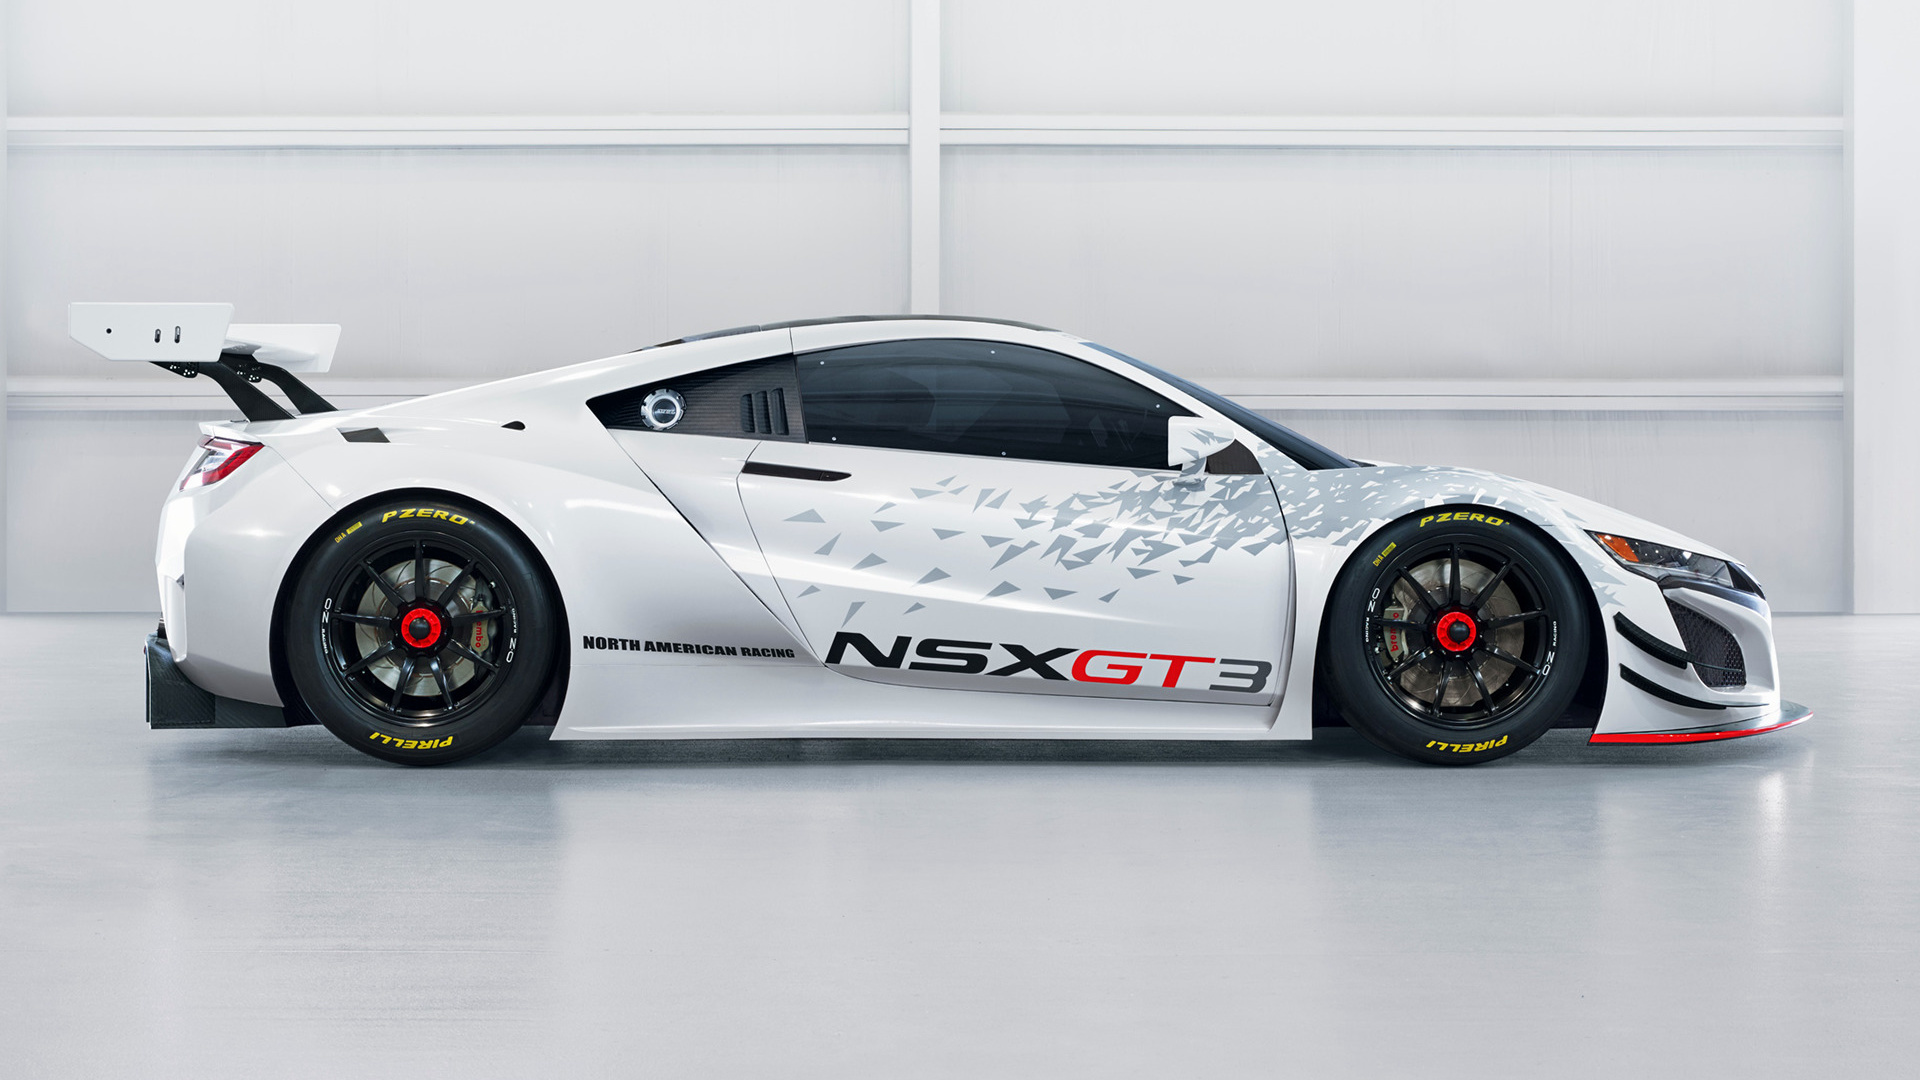 Acura Nsx Gt Wallpaper Hd